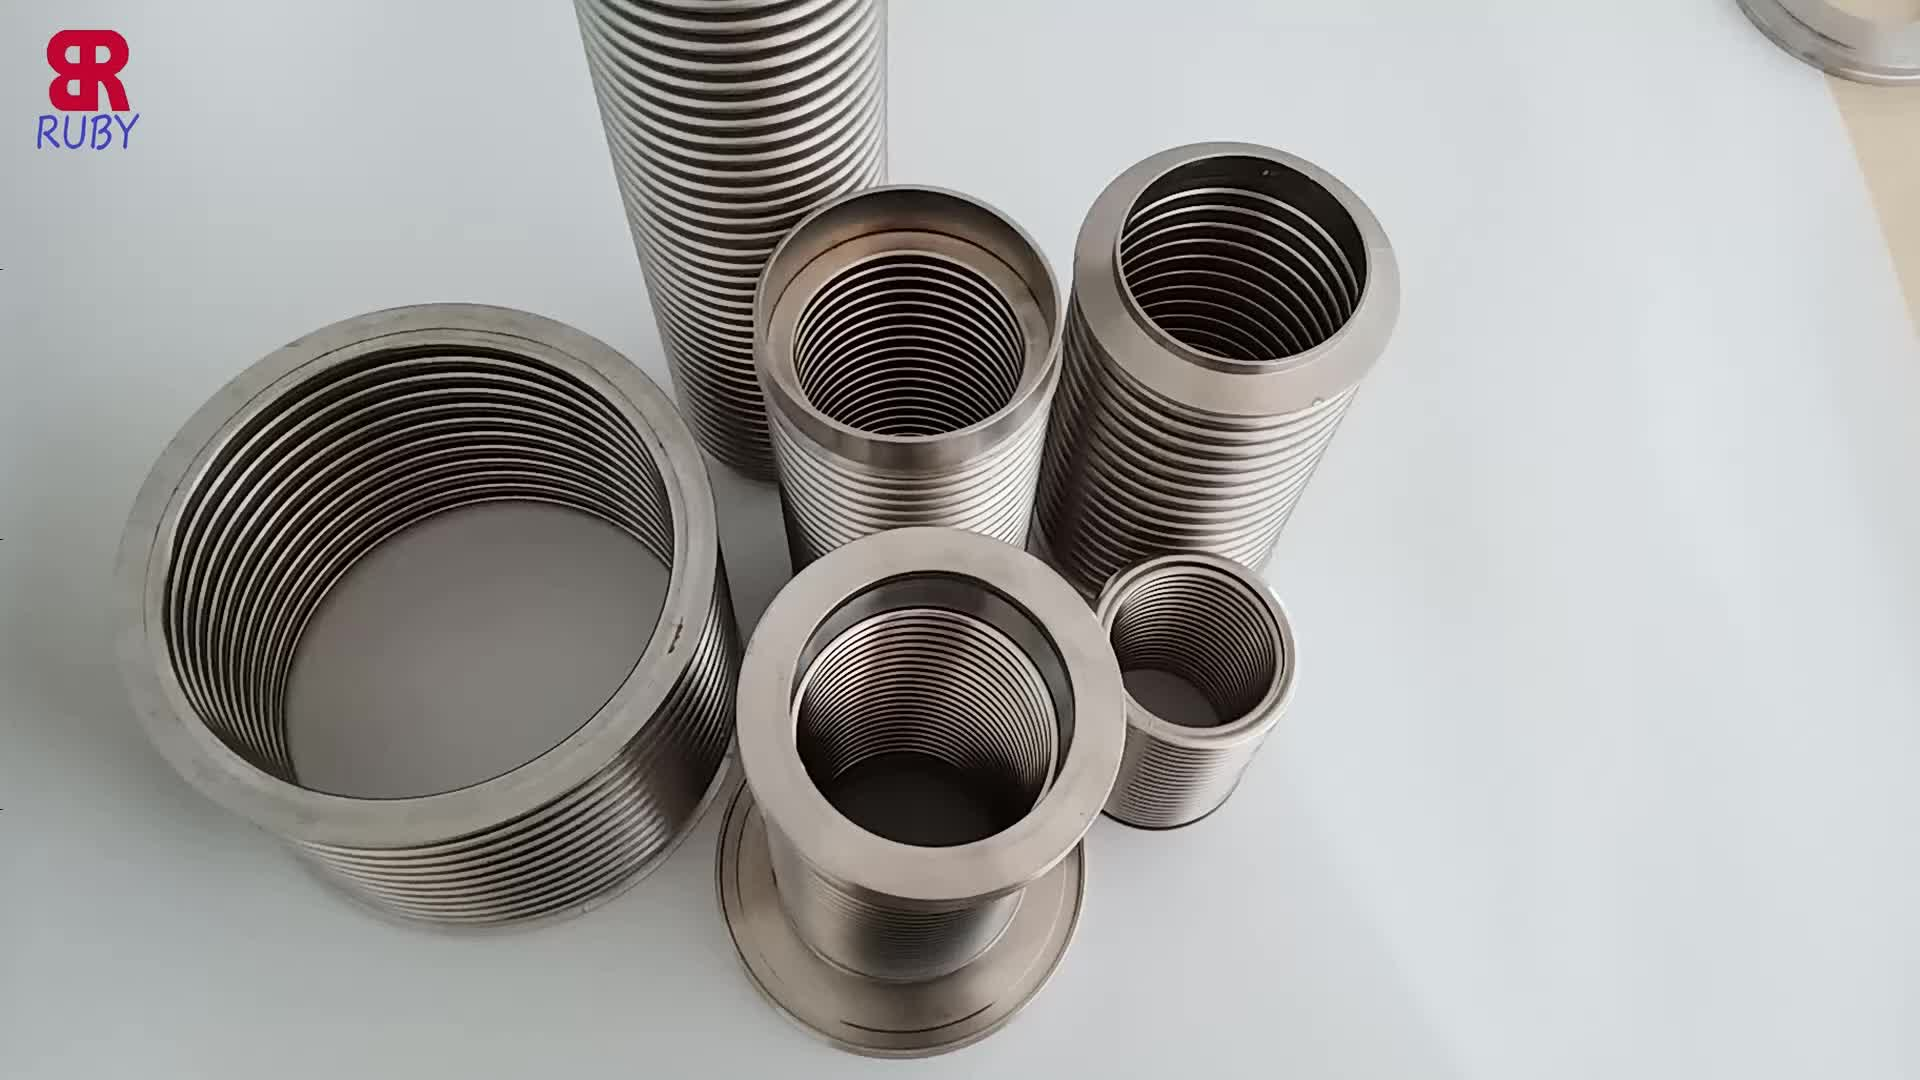 Metal KF-25,ISO-KF Flange Size NW-25, 304 Stainless Steel, Vacuum Corrugated Bellows Pipe Tube